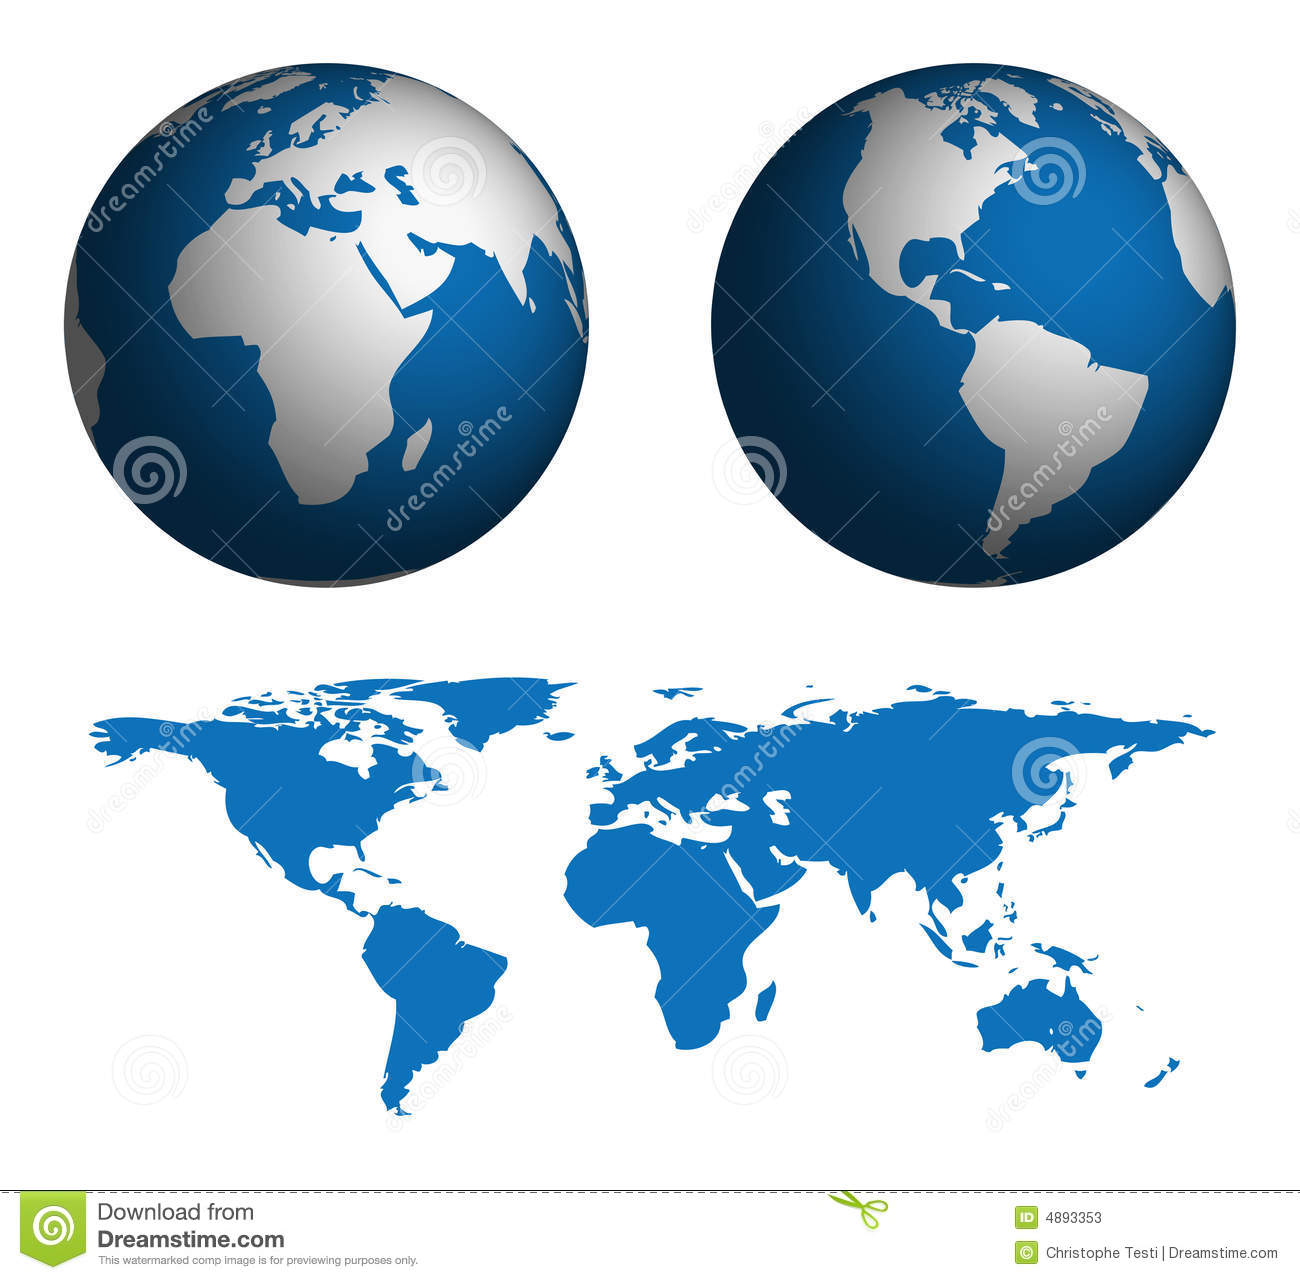 Globe and map of the world stock vector illustration of islands globe and map of the world map was manually traced in illustrator from public domain world map no transparency eps file also available gumiabroncs Image collections